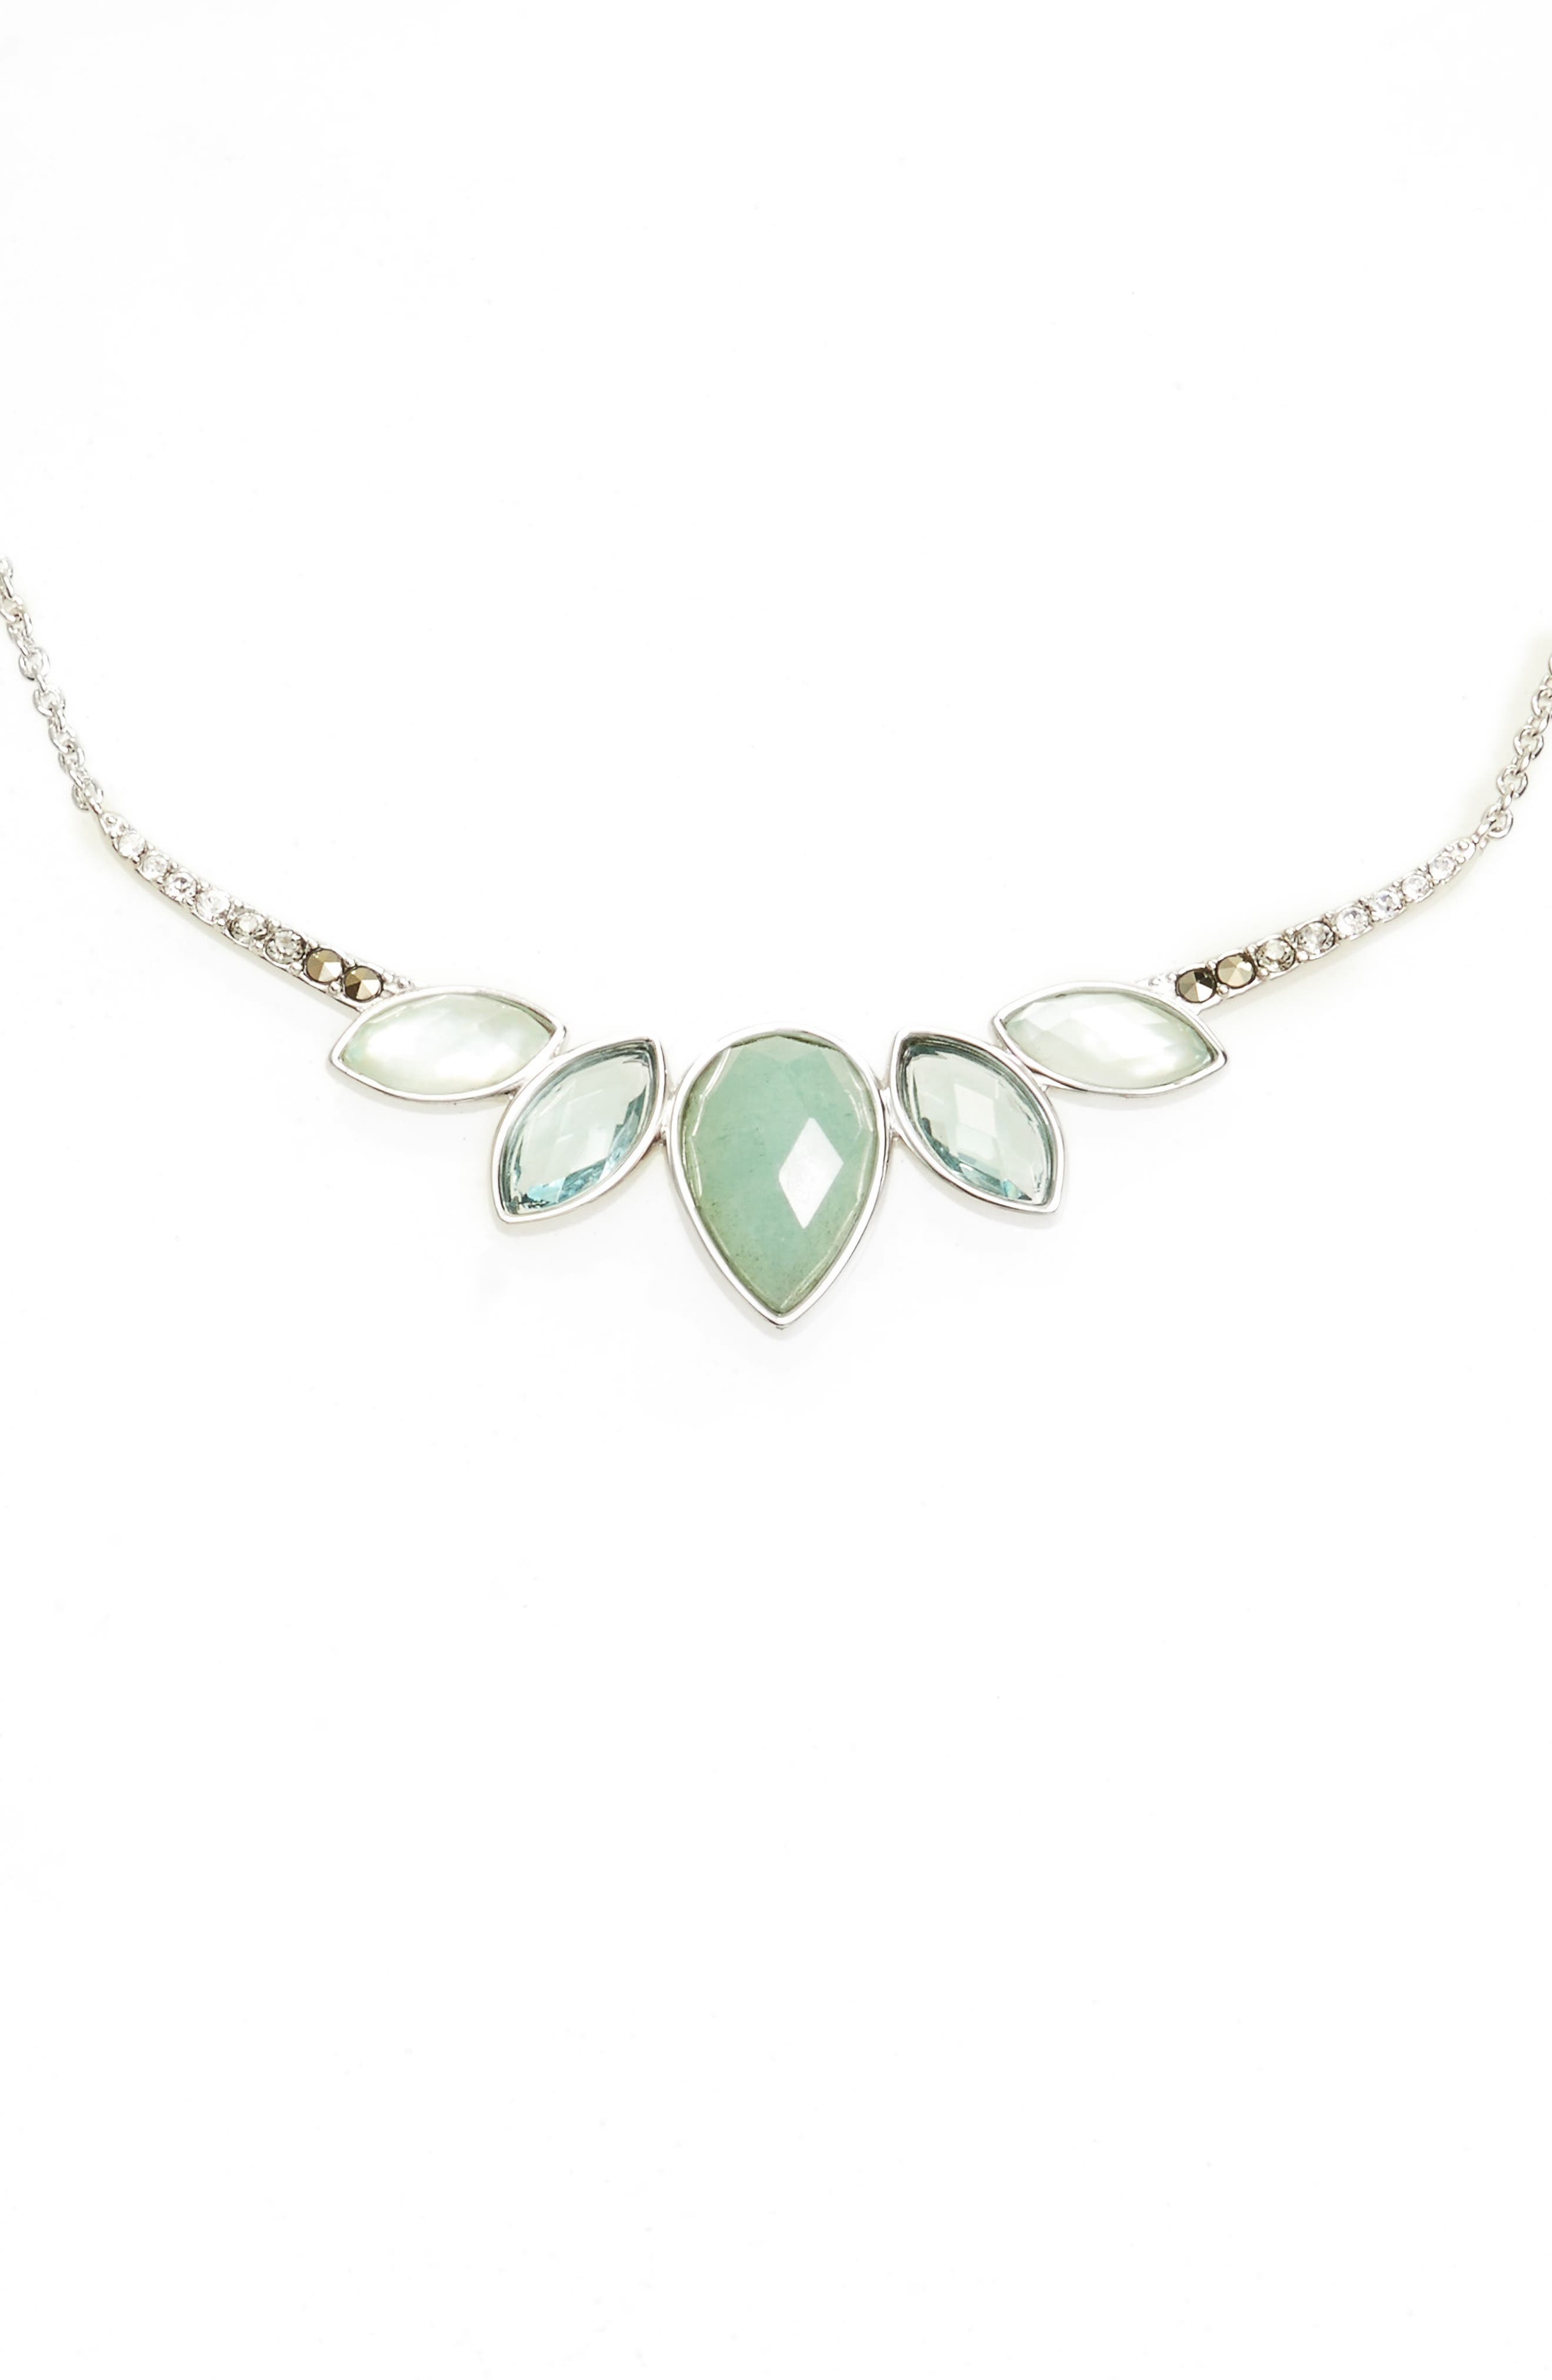 Lakeside Crystal Frontal Necklace,                             Main thumbnail 1, color,